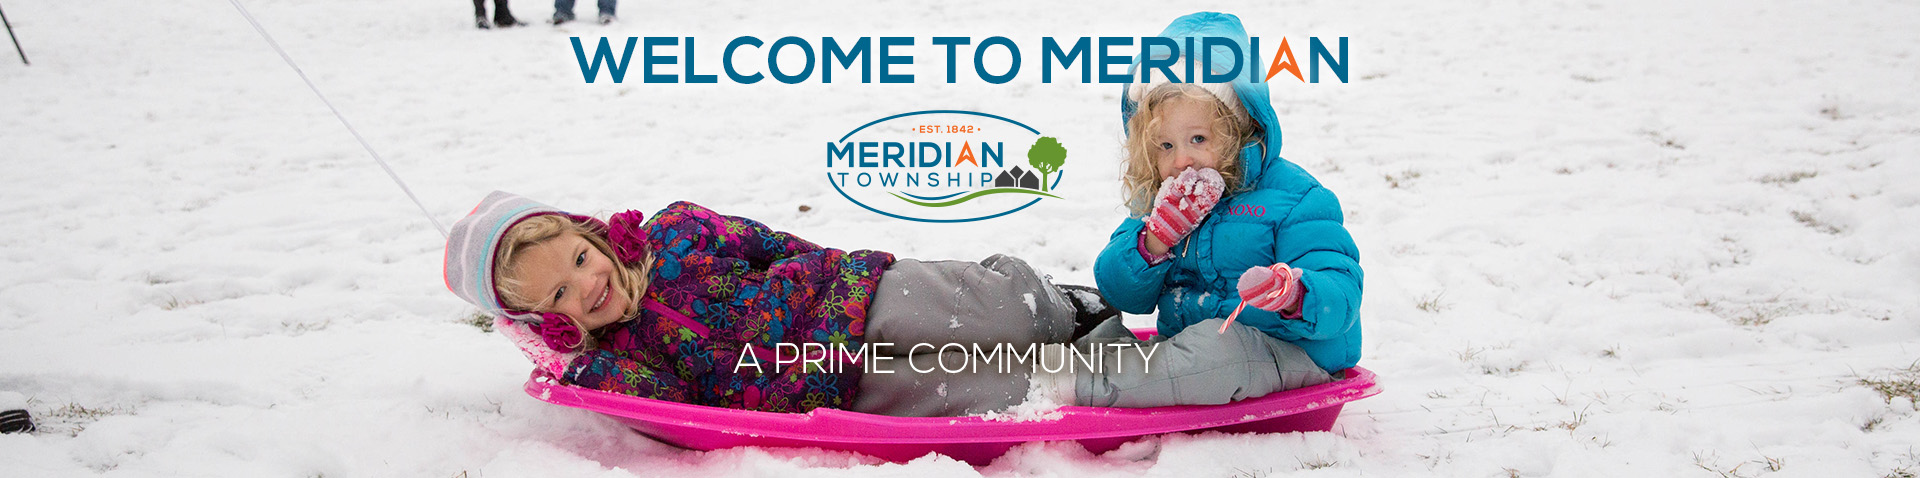 Welcome to Meridian Winter